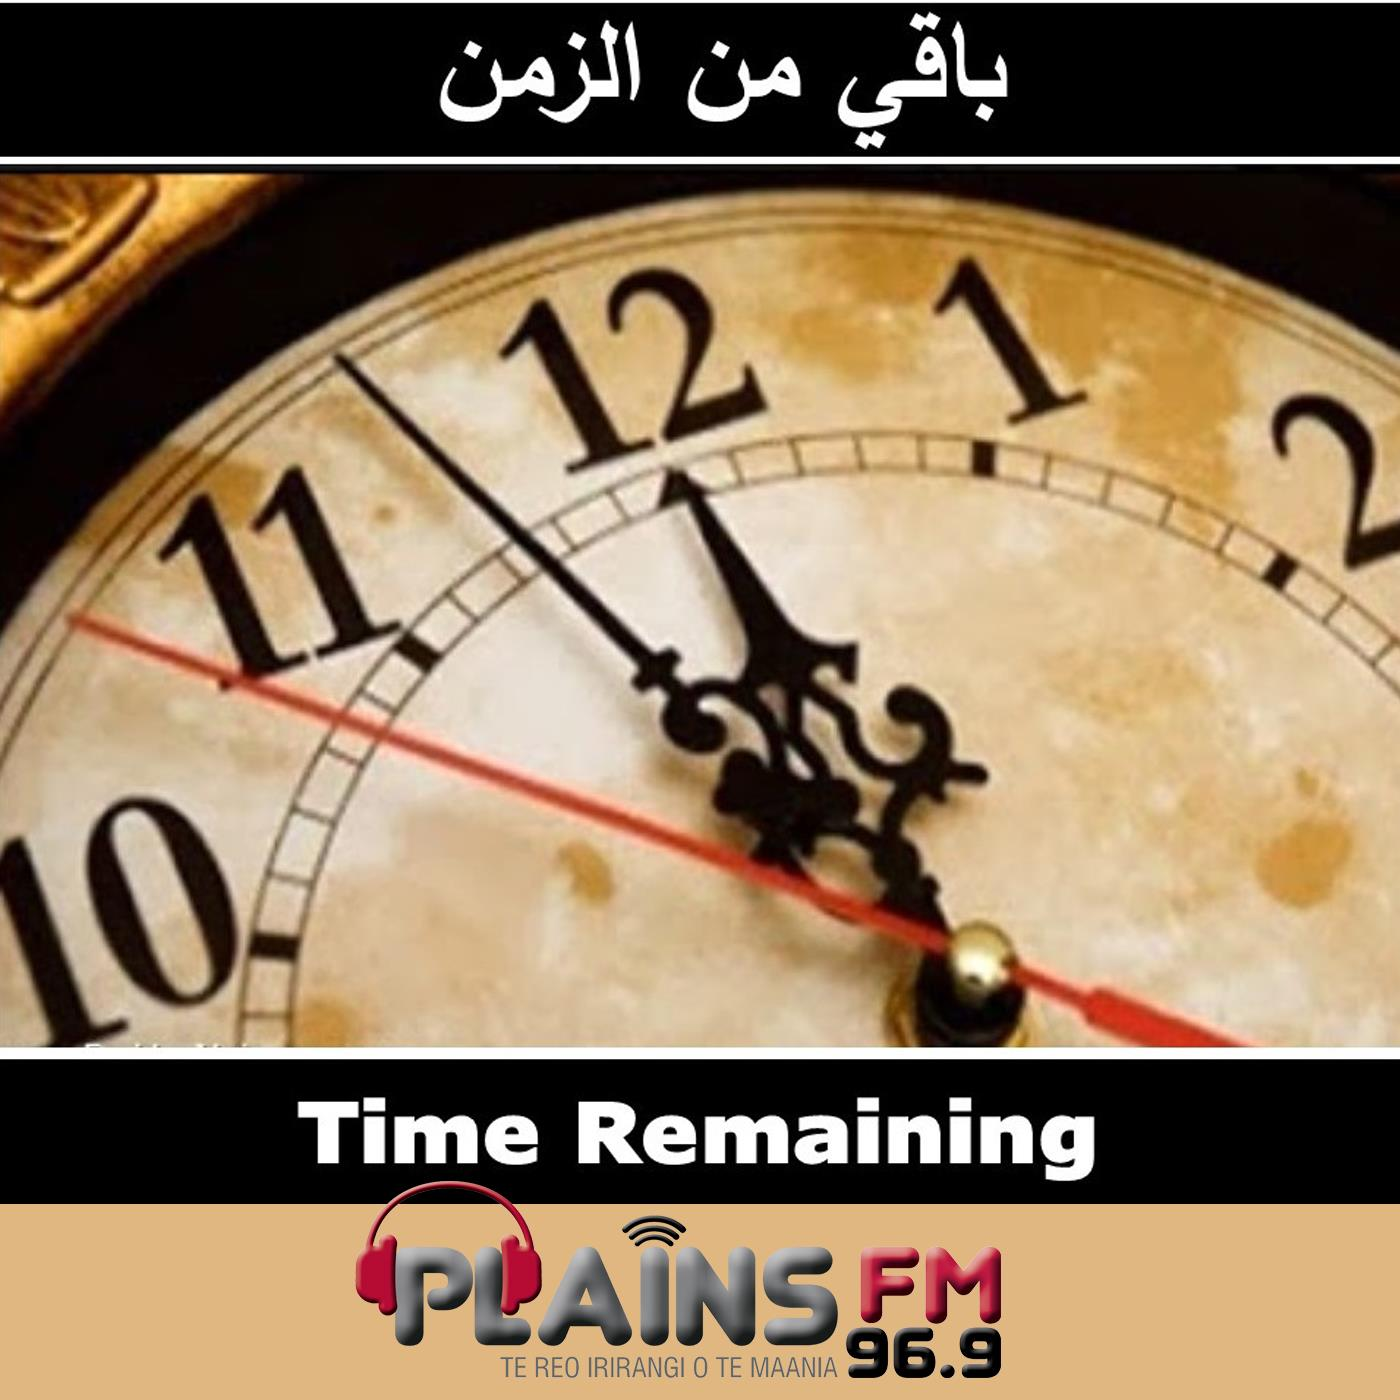 The Time Remaining (Baki Min Al Zaman)